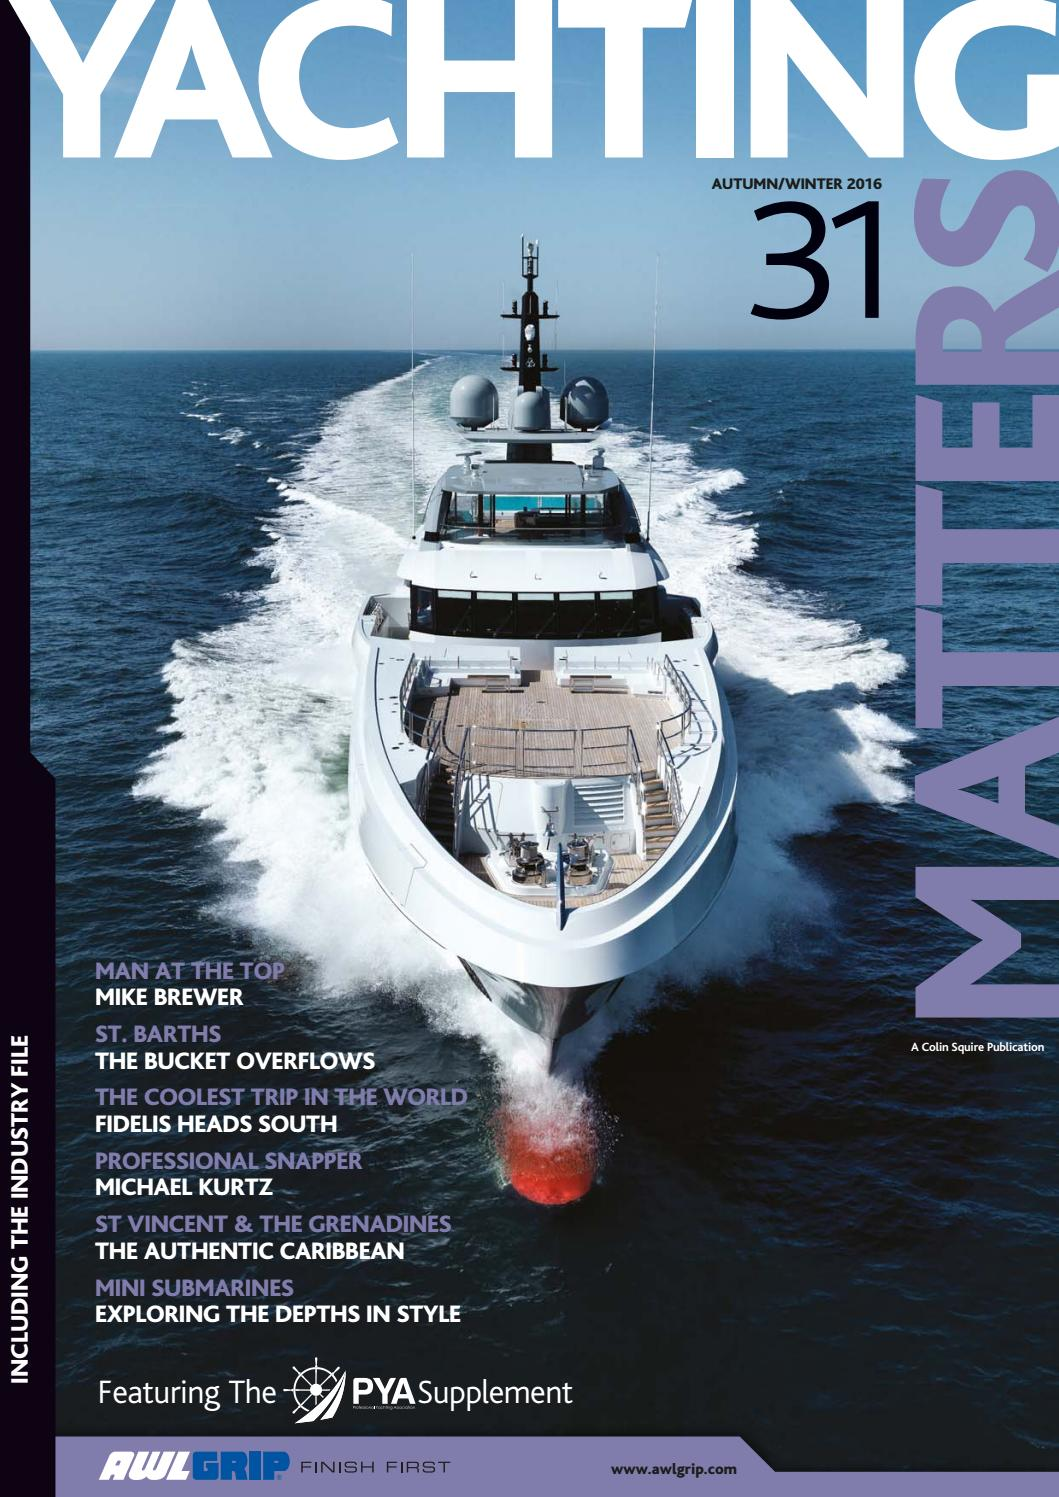 Yachting Matters 31 Autumn Winter 2016 By Issuu Century Ac Motor Wiring Diagram 115 230 Volts